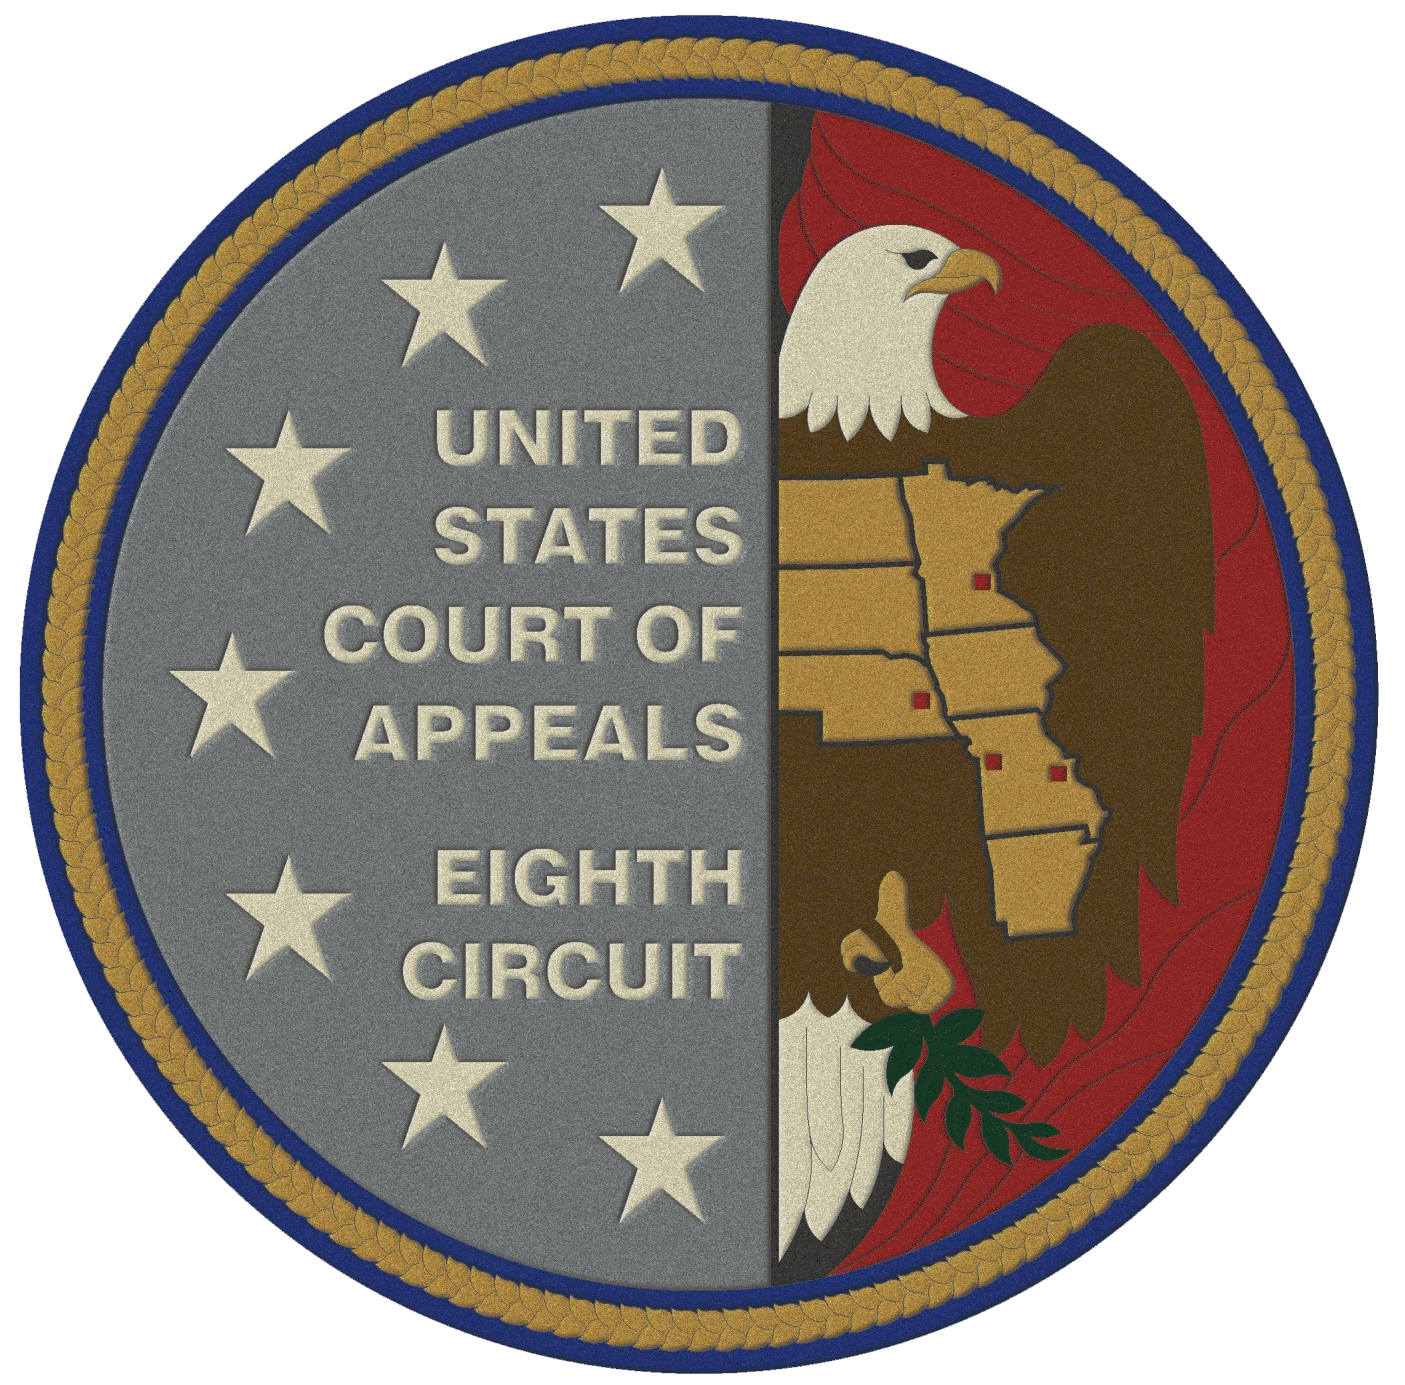 U.S. Court of Appeals for the Eighth Circuit